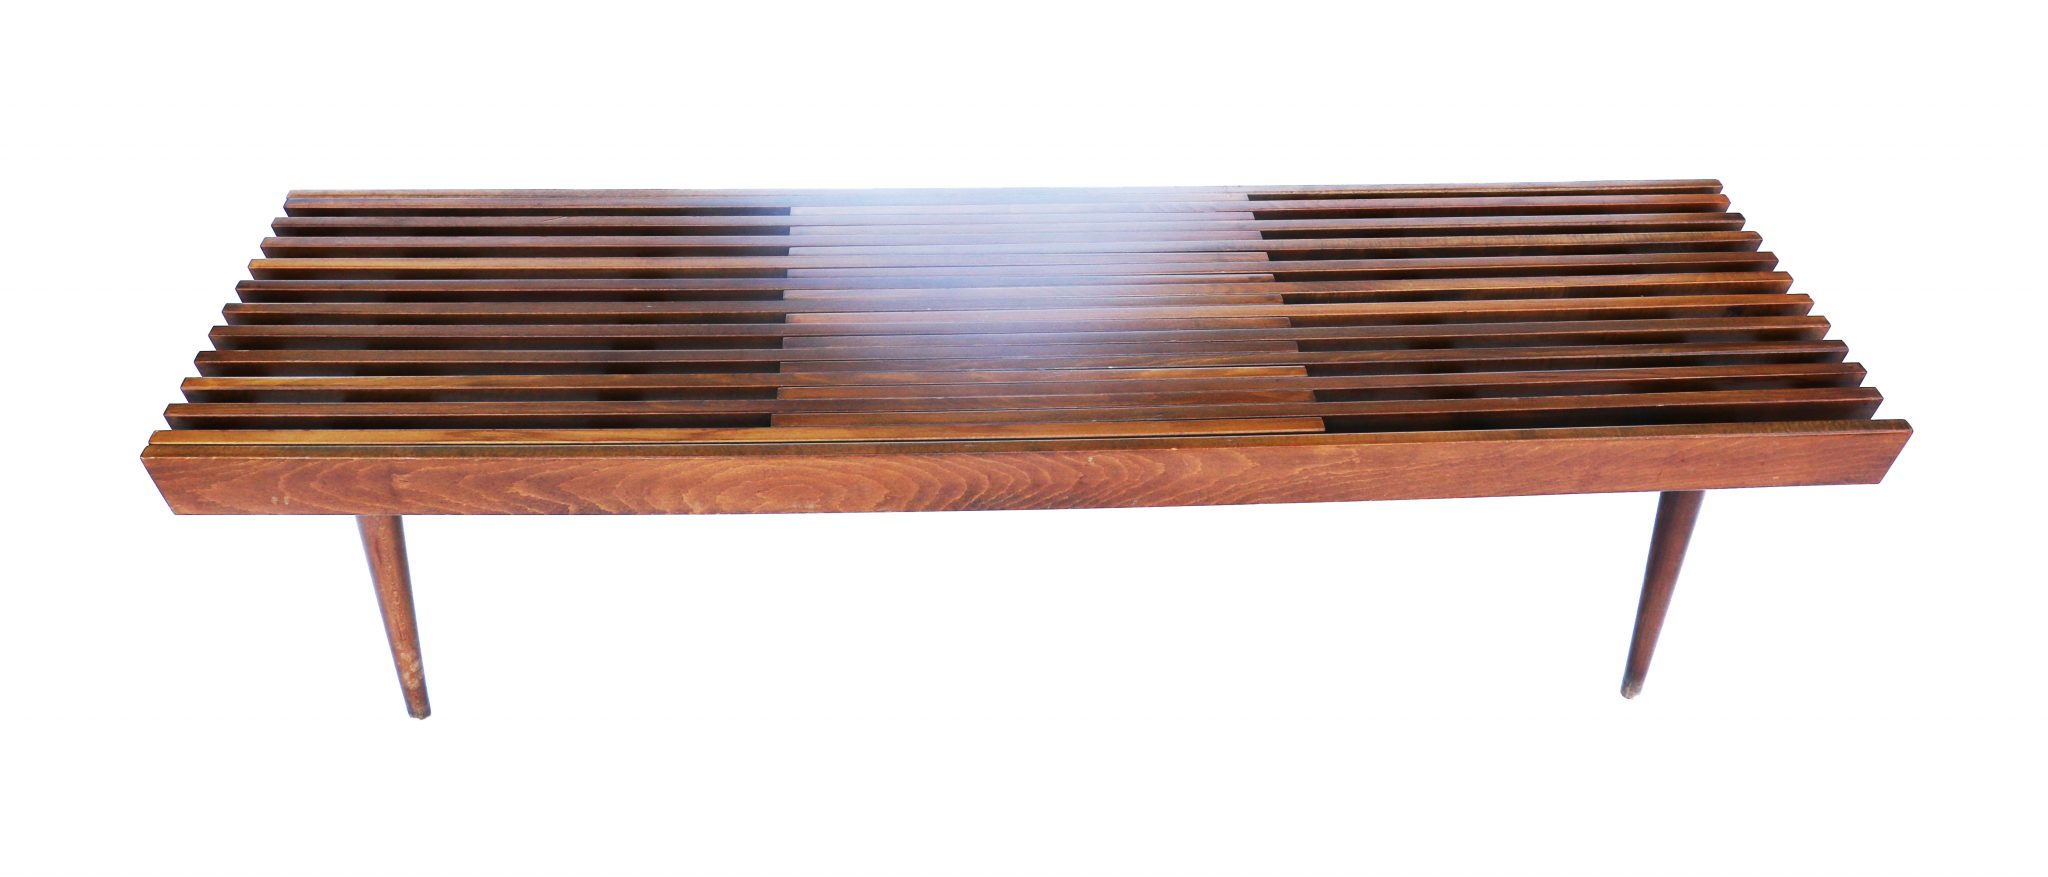 wood coffee table bench photo - 1